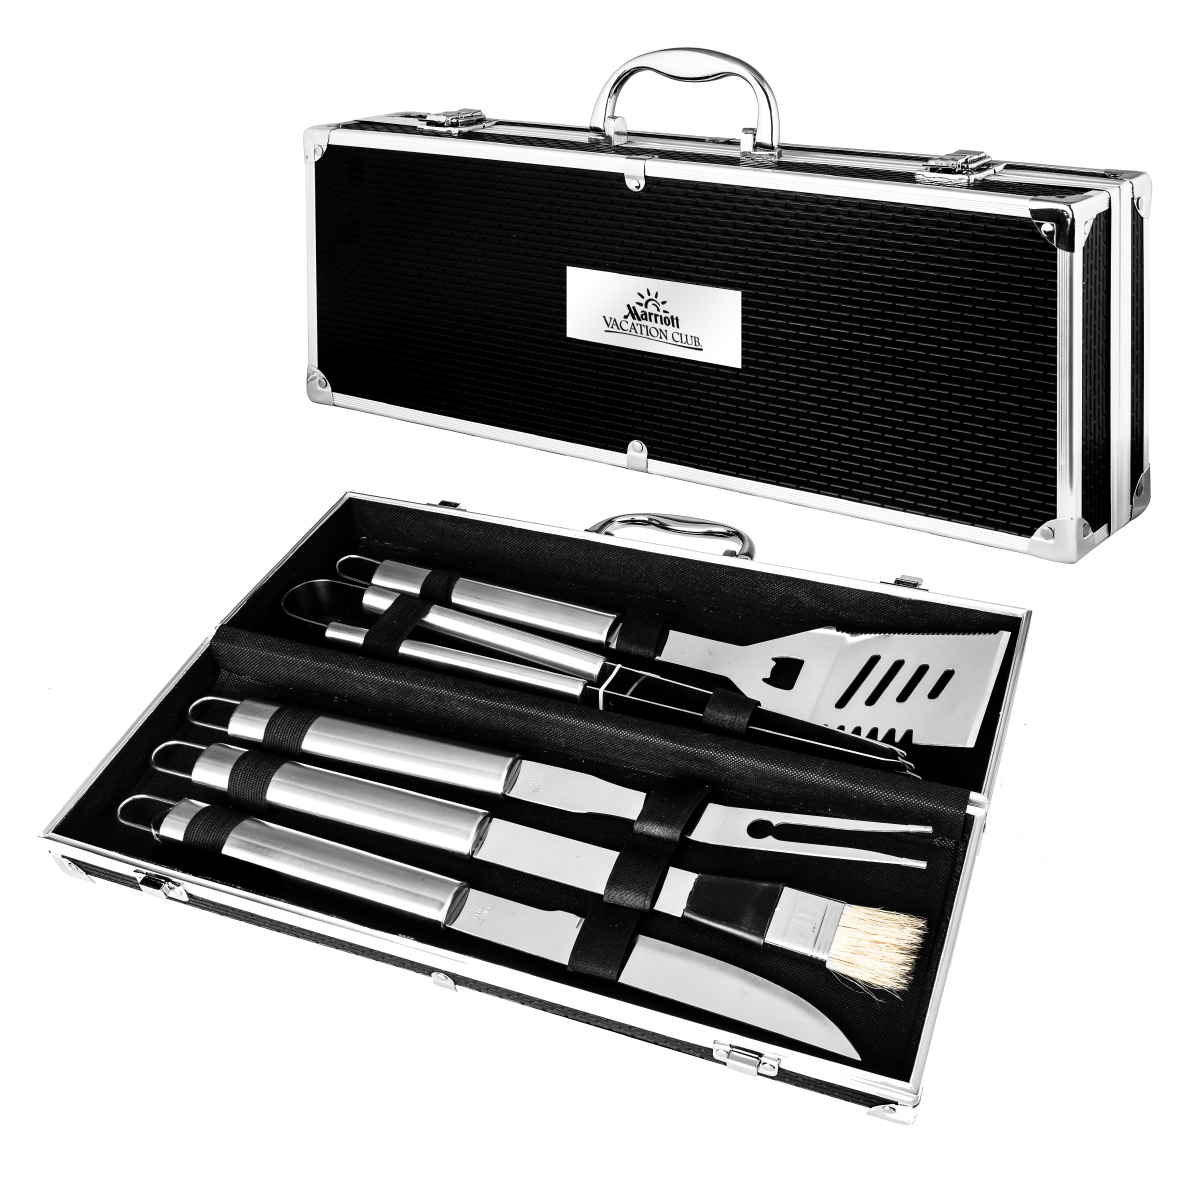 5 PC STAINLESS STEEL BBQ GIFT SET